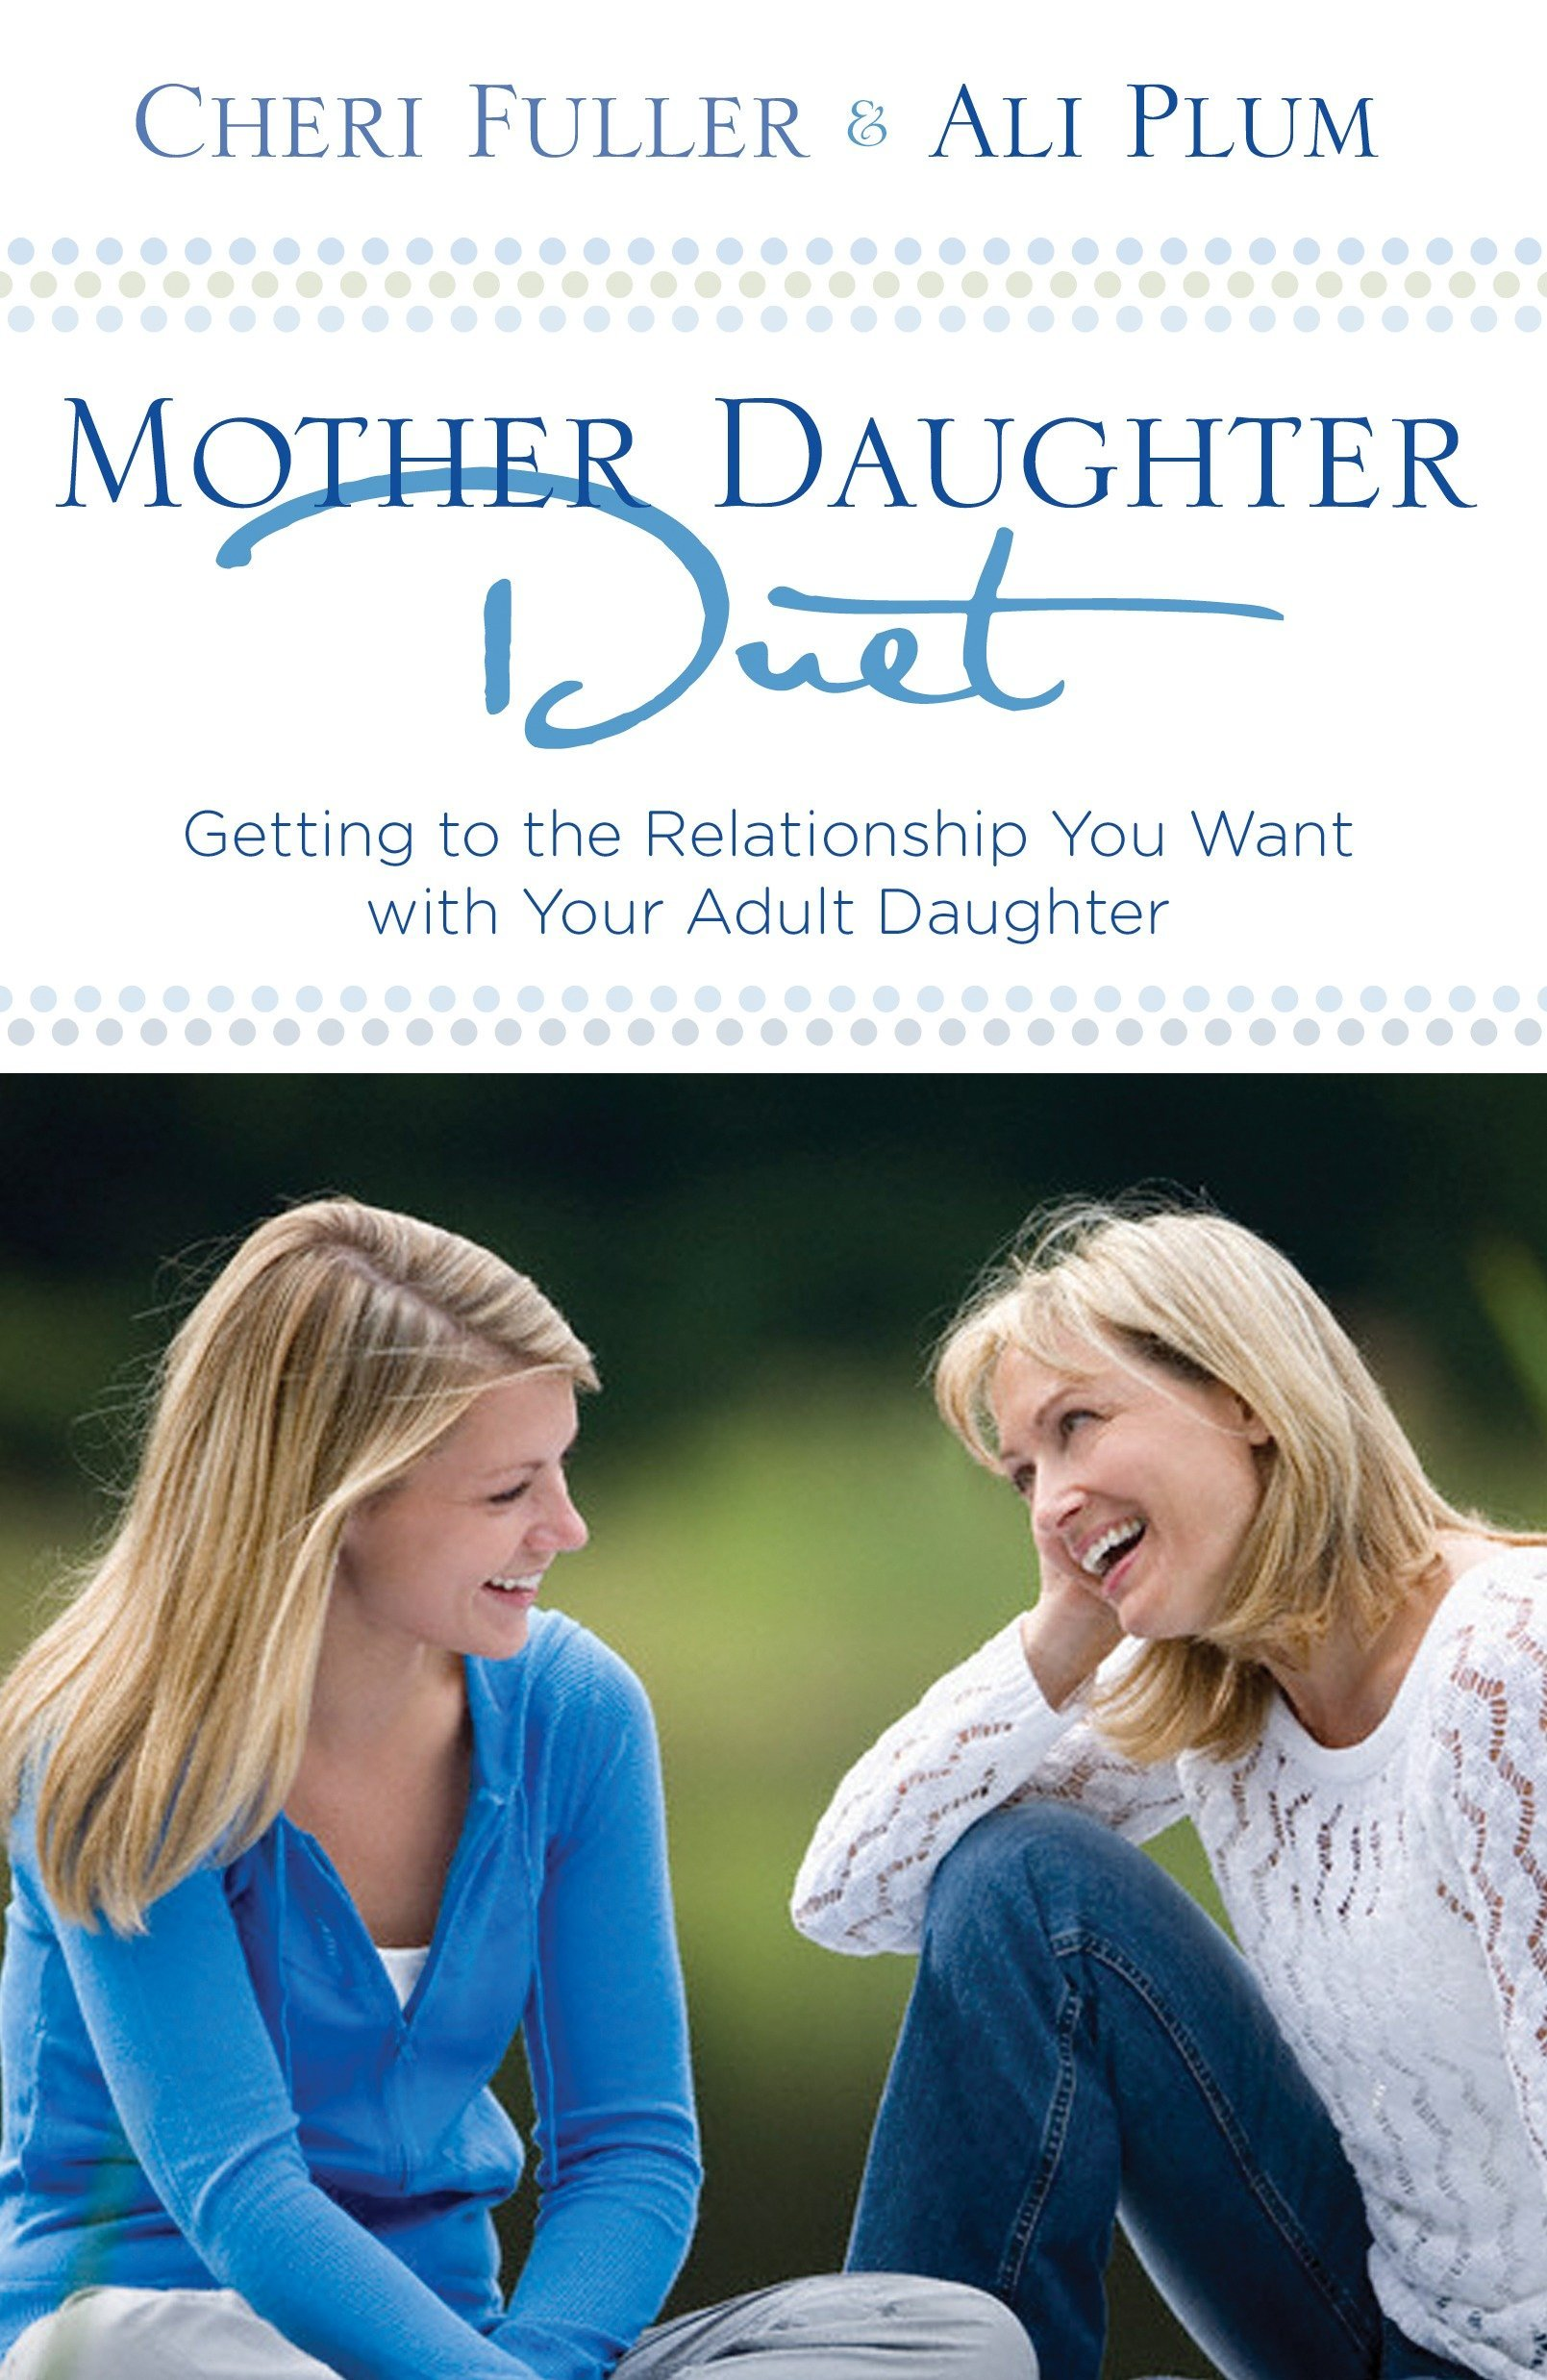 Mother-Daughter Duet: Getting to the Relationship You Want with Your Adult  Daughter: Fuller, Cheri, Plum, Ali: 9781601421623: Amazon.com: Books